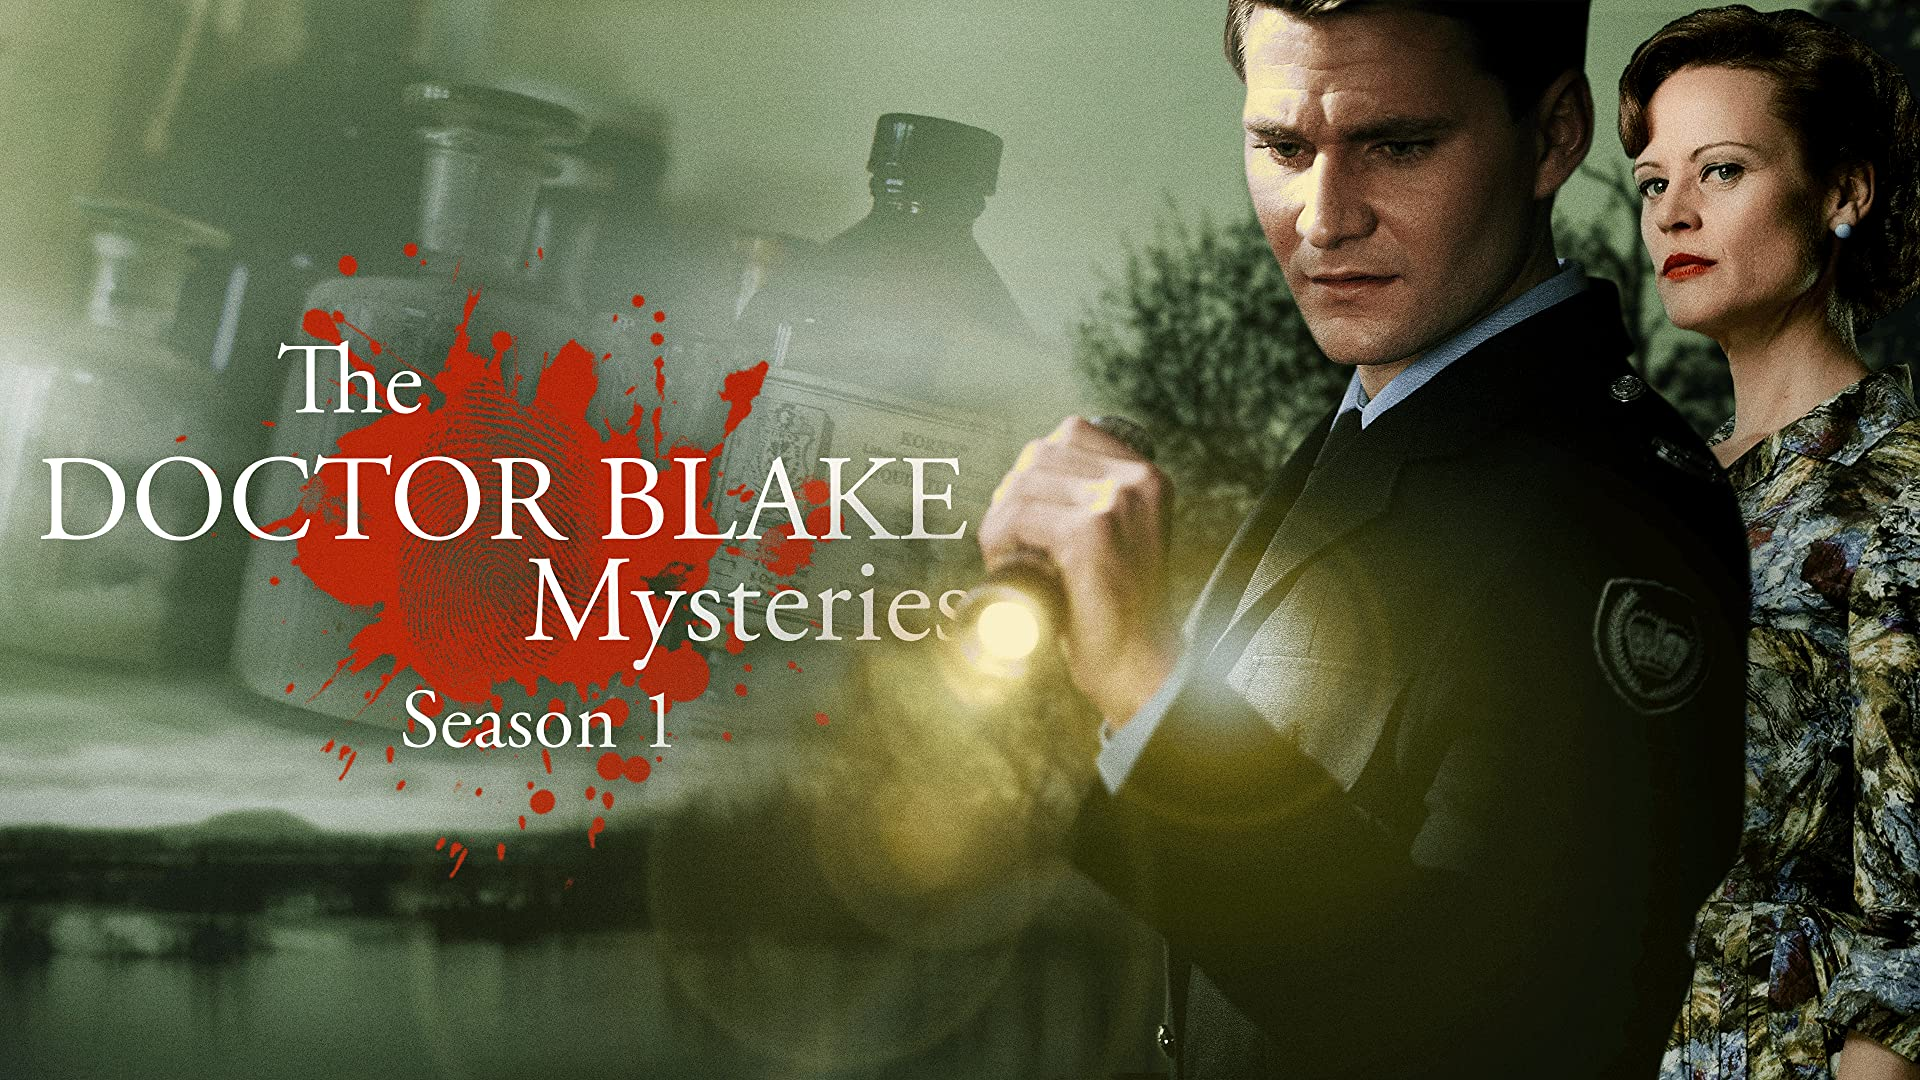 The Doctor Blake Mysteries, Season 1